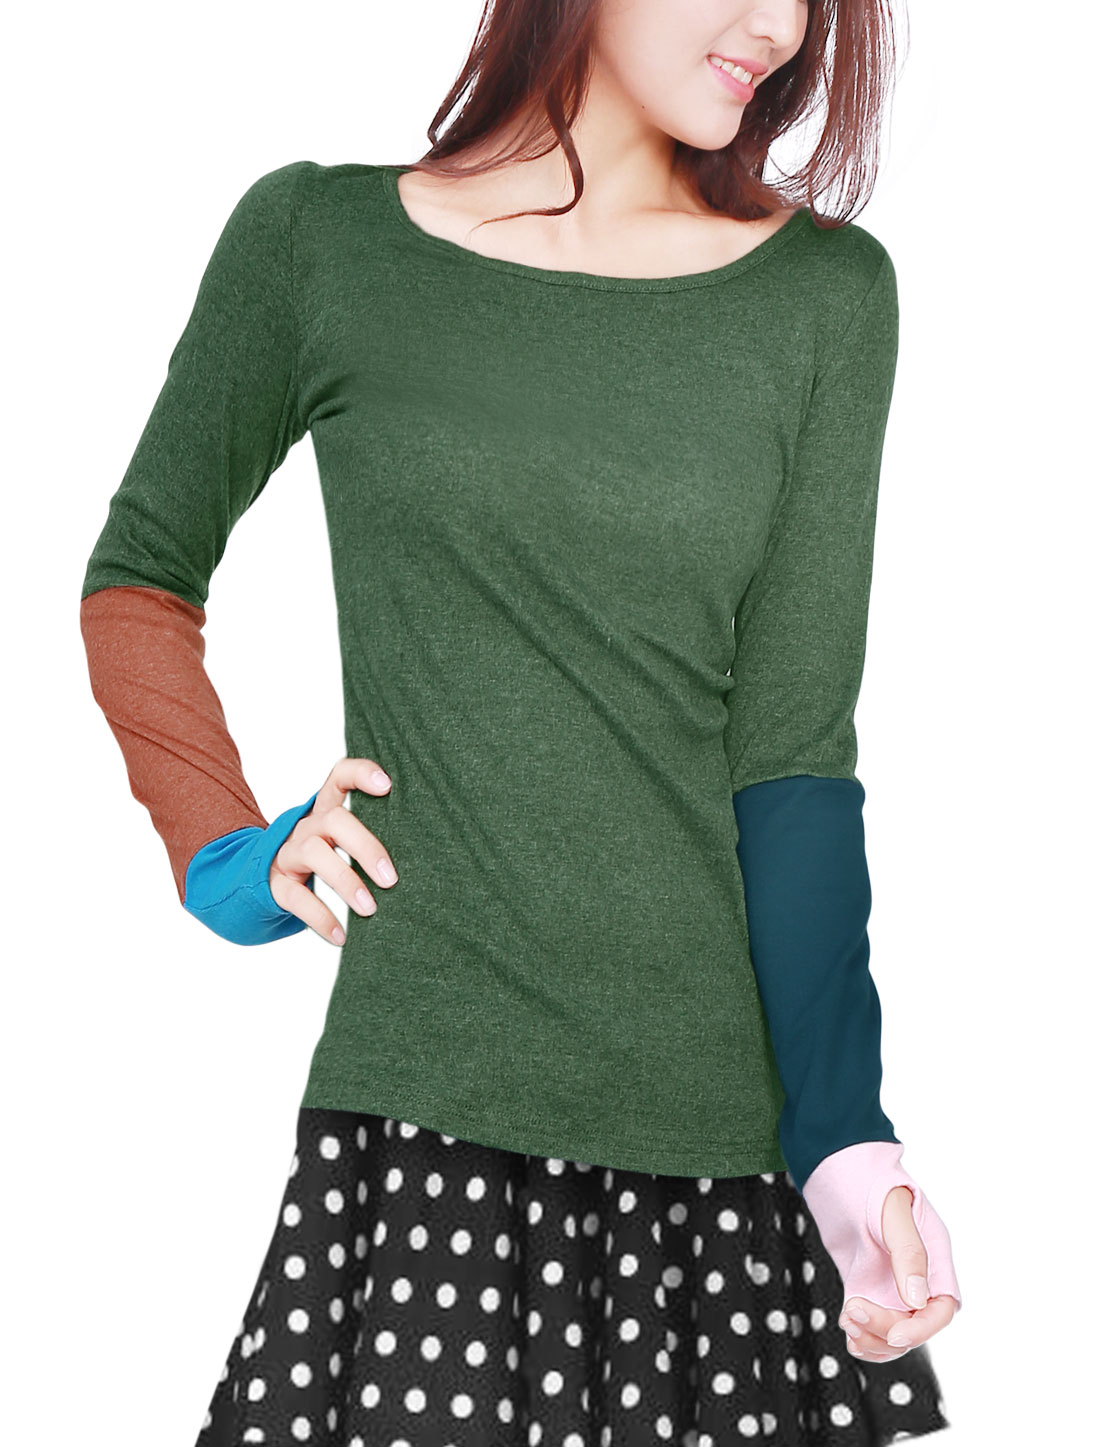 Lady Stylish Dark Green Scoop Neck Long Sleeve Splice Top Shirt M